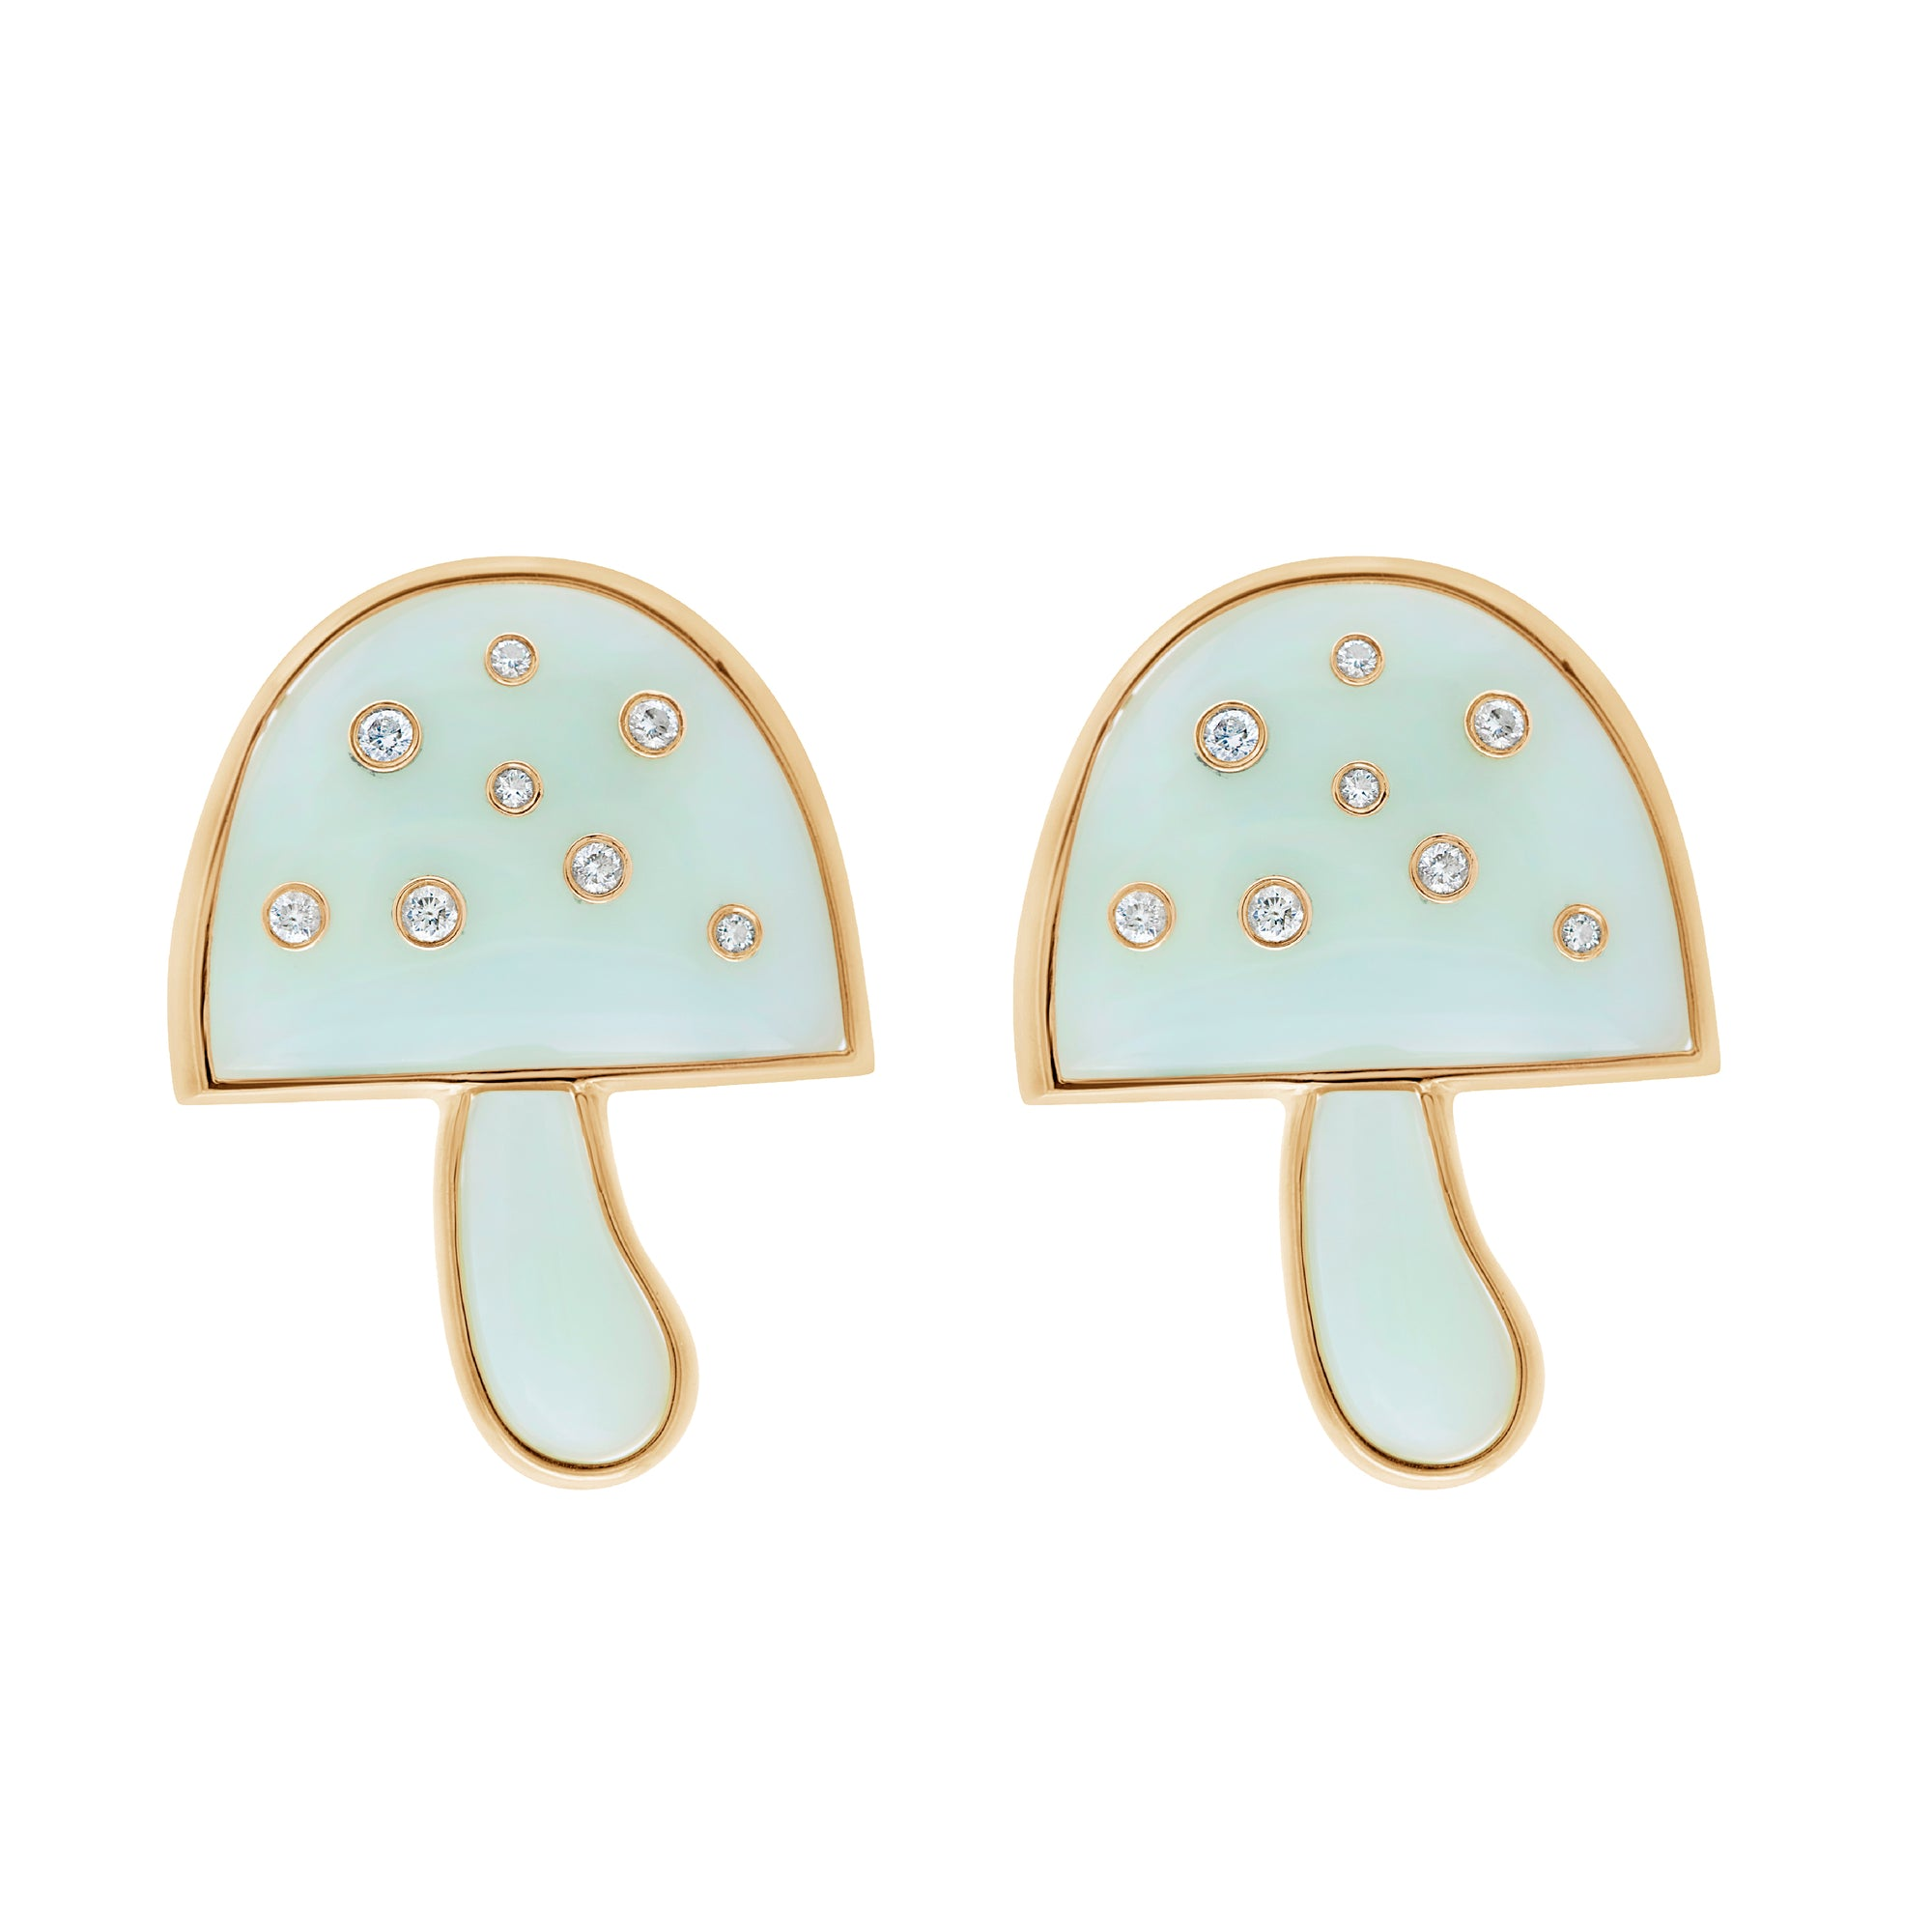 Magic Mushroom Dot Earrings with Diamonds